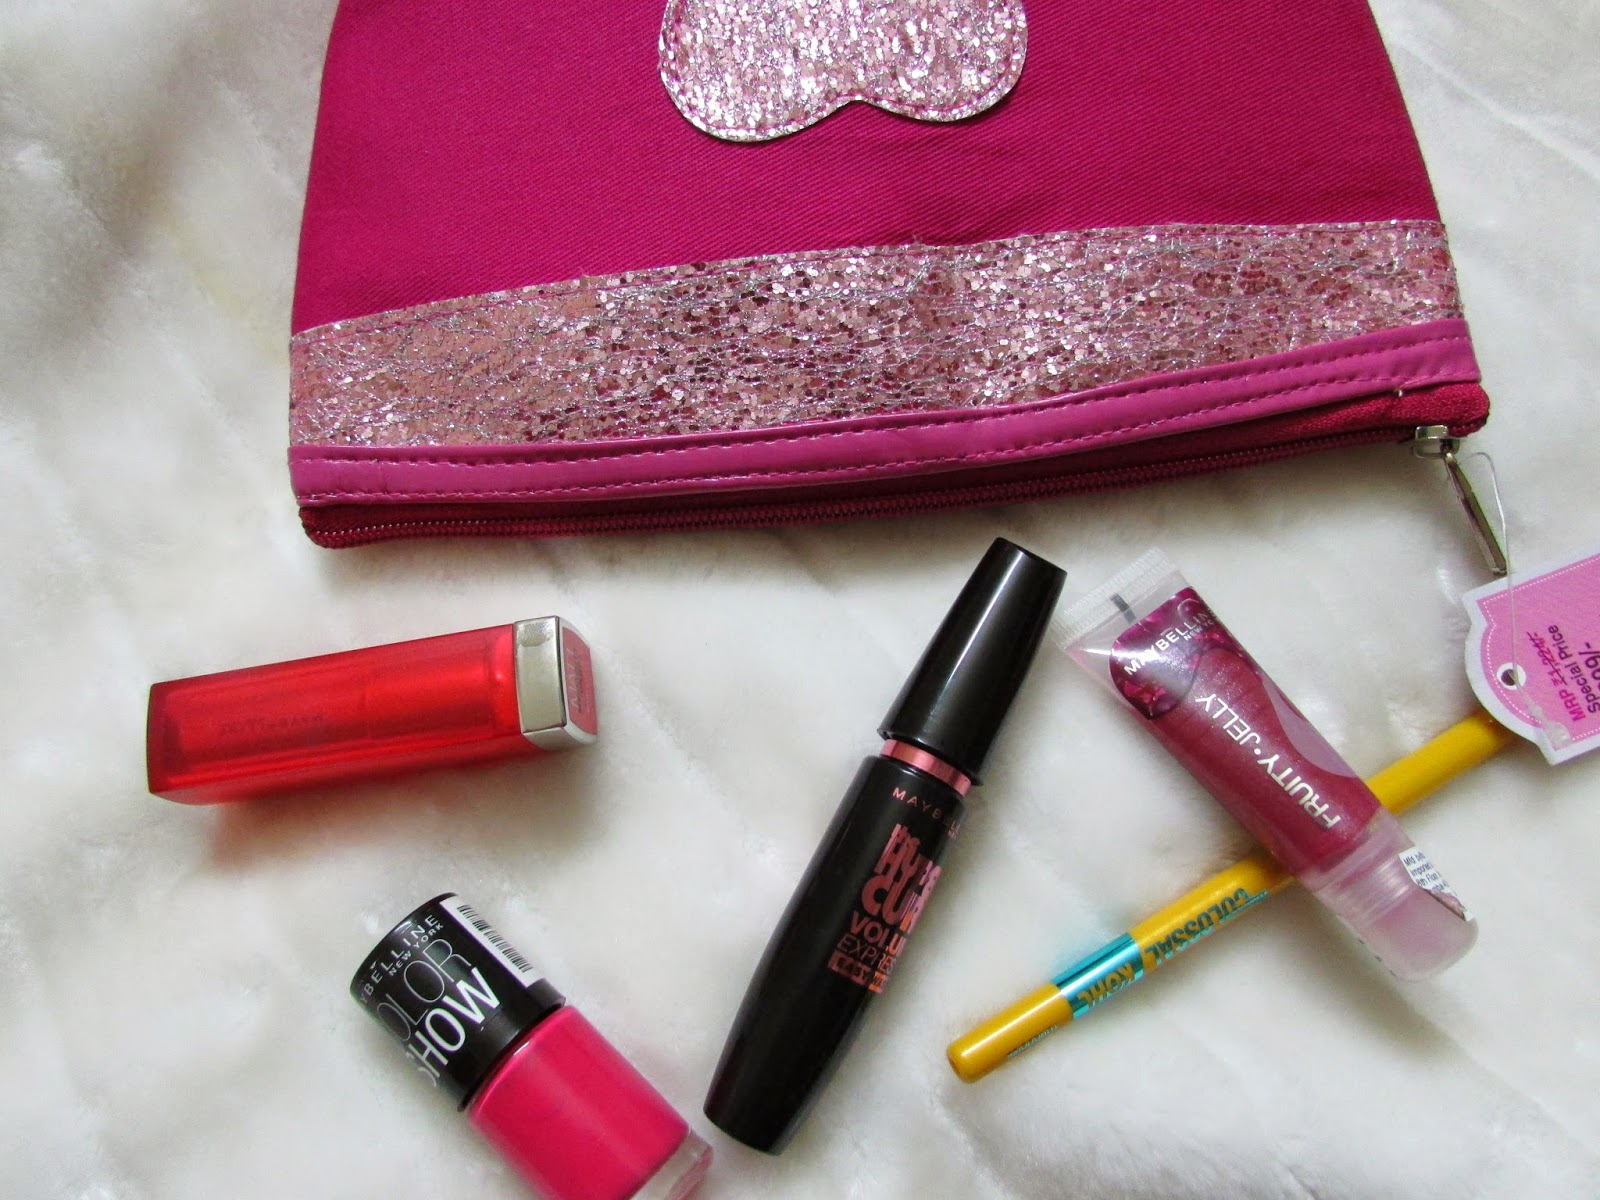 Maybelline InstaGlam Valentine's Gift Kit, Last minute valentines gift idea, Maybelline Colossal Turquoise, Maybelline Colorsensational  Bold Matt lipstick, Maybelline Hyper Curl Volume Express Mascara, Maybelline Fruity Jelly in sparkling grape, Maybelline Colorshow Nailpaint, beauty , fashion,beauty and fashion,beauty blog, fashion blog , indian beauty blog,indian fashion blog, beauty and fashion blog, indian beauty and fashion blog, indian bloggers, indian beauty bloggers, indian fashion bloggers,indian bloggers online, top 10 indian bloggers, top indian bloggers,top 10 fashion blogs, indian bloggers on blogspot,home remedies, how to